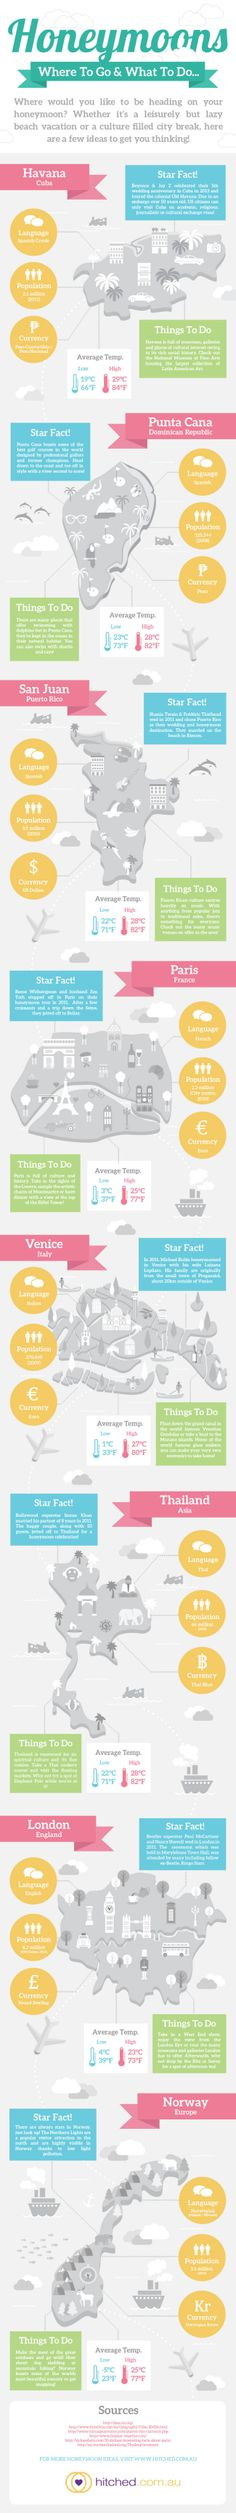 Which Honeymoon Destination Suits You? #honeymoon #travel #wedding #destination #infographic